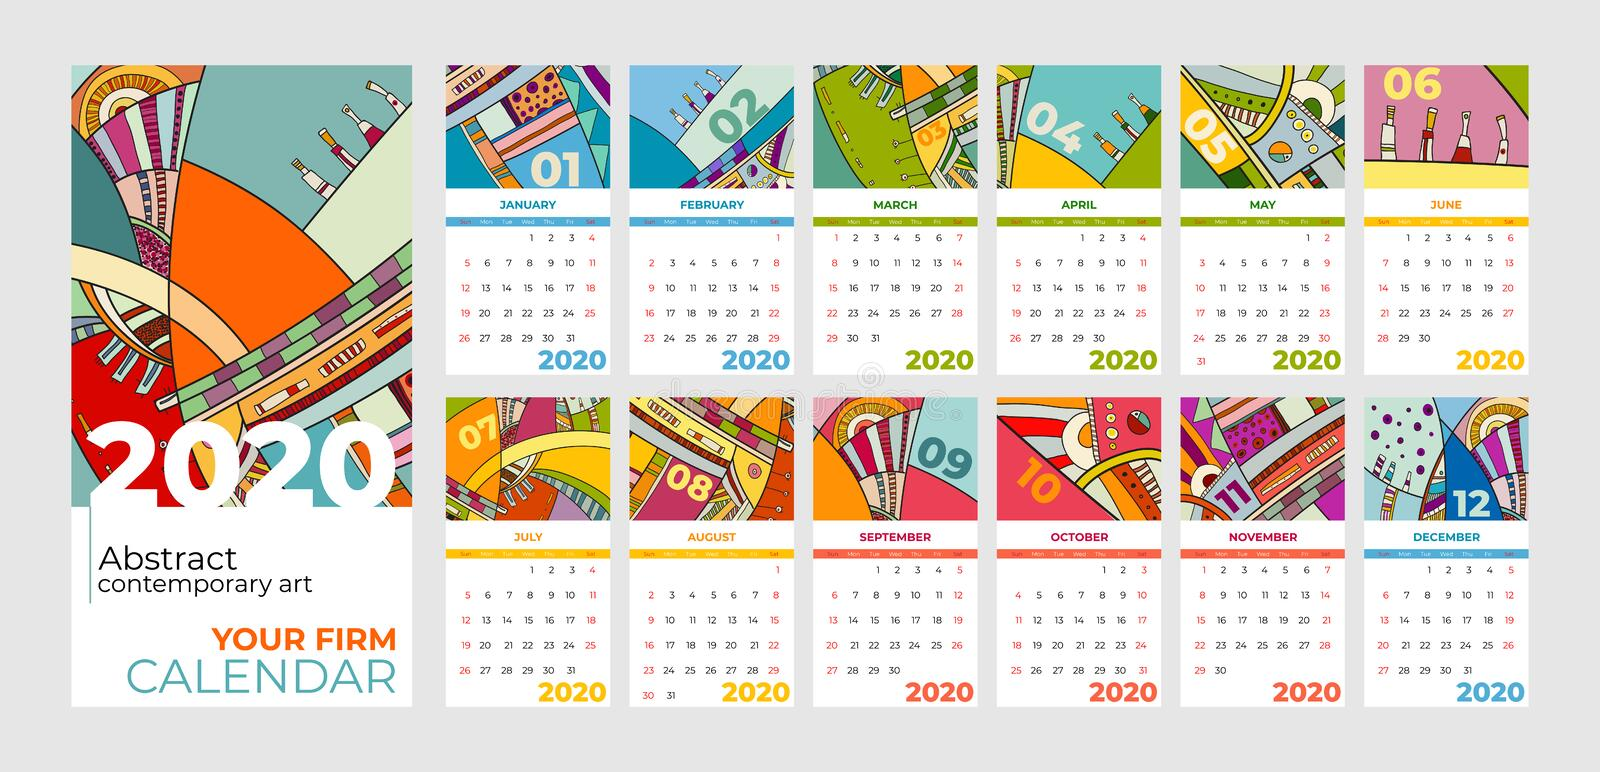 2020 calendar abstract contemporary art vector set. Desk, screen, desktop months 2020, colorful 2020 calendar template. Agenda pattern. Psychedelic sketched royalty free illustration